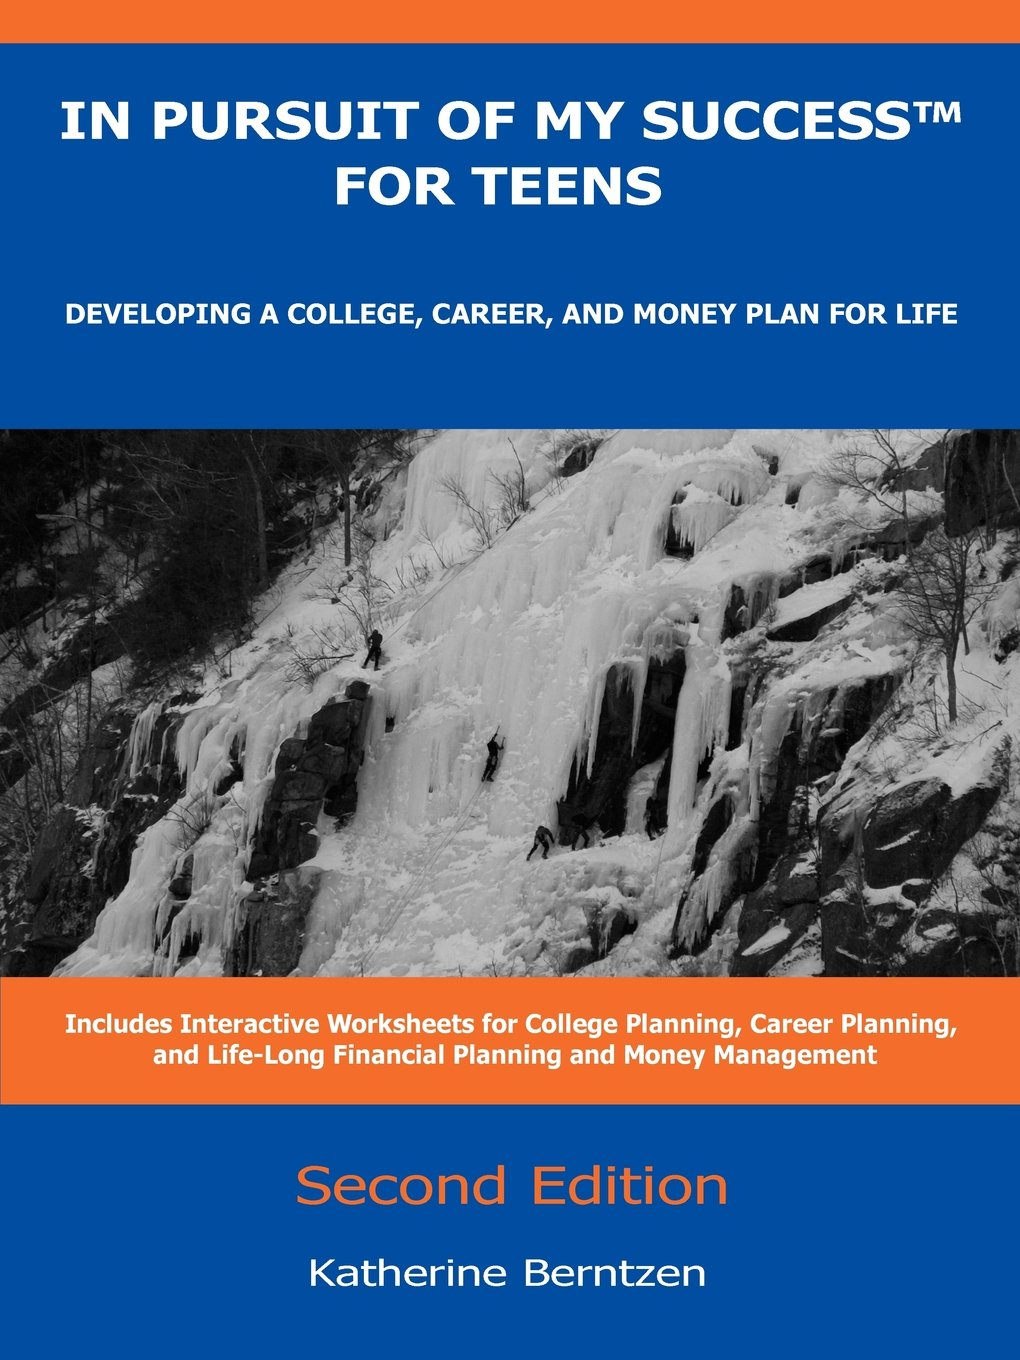 Download In Pursuit of My Success for Teens: Developing a College, Career, and Money Plan for Life, 2nd Edition PDF